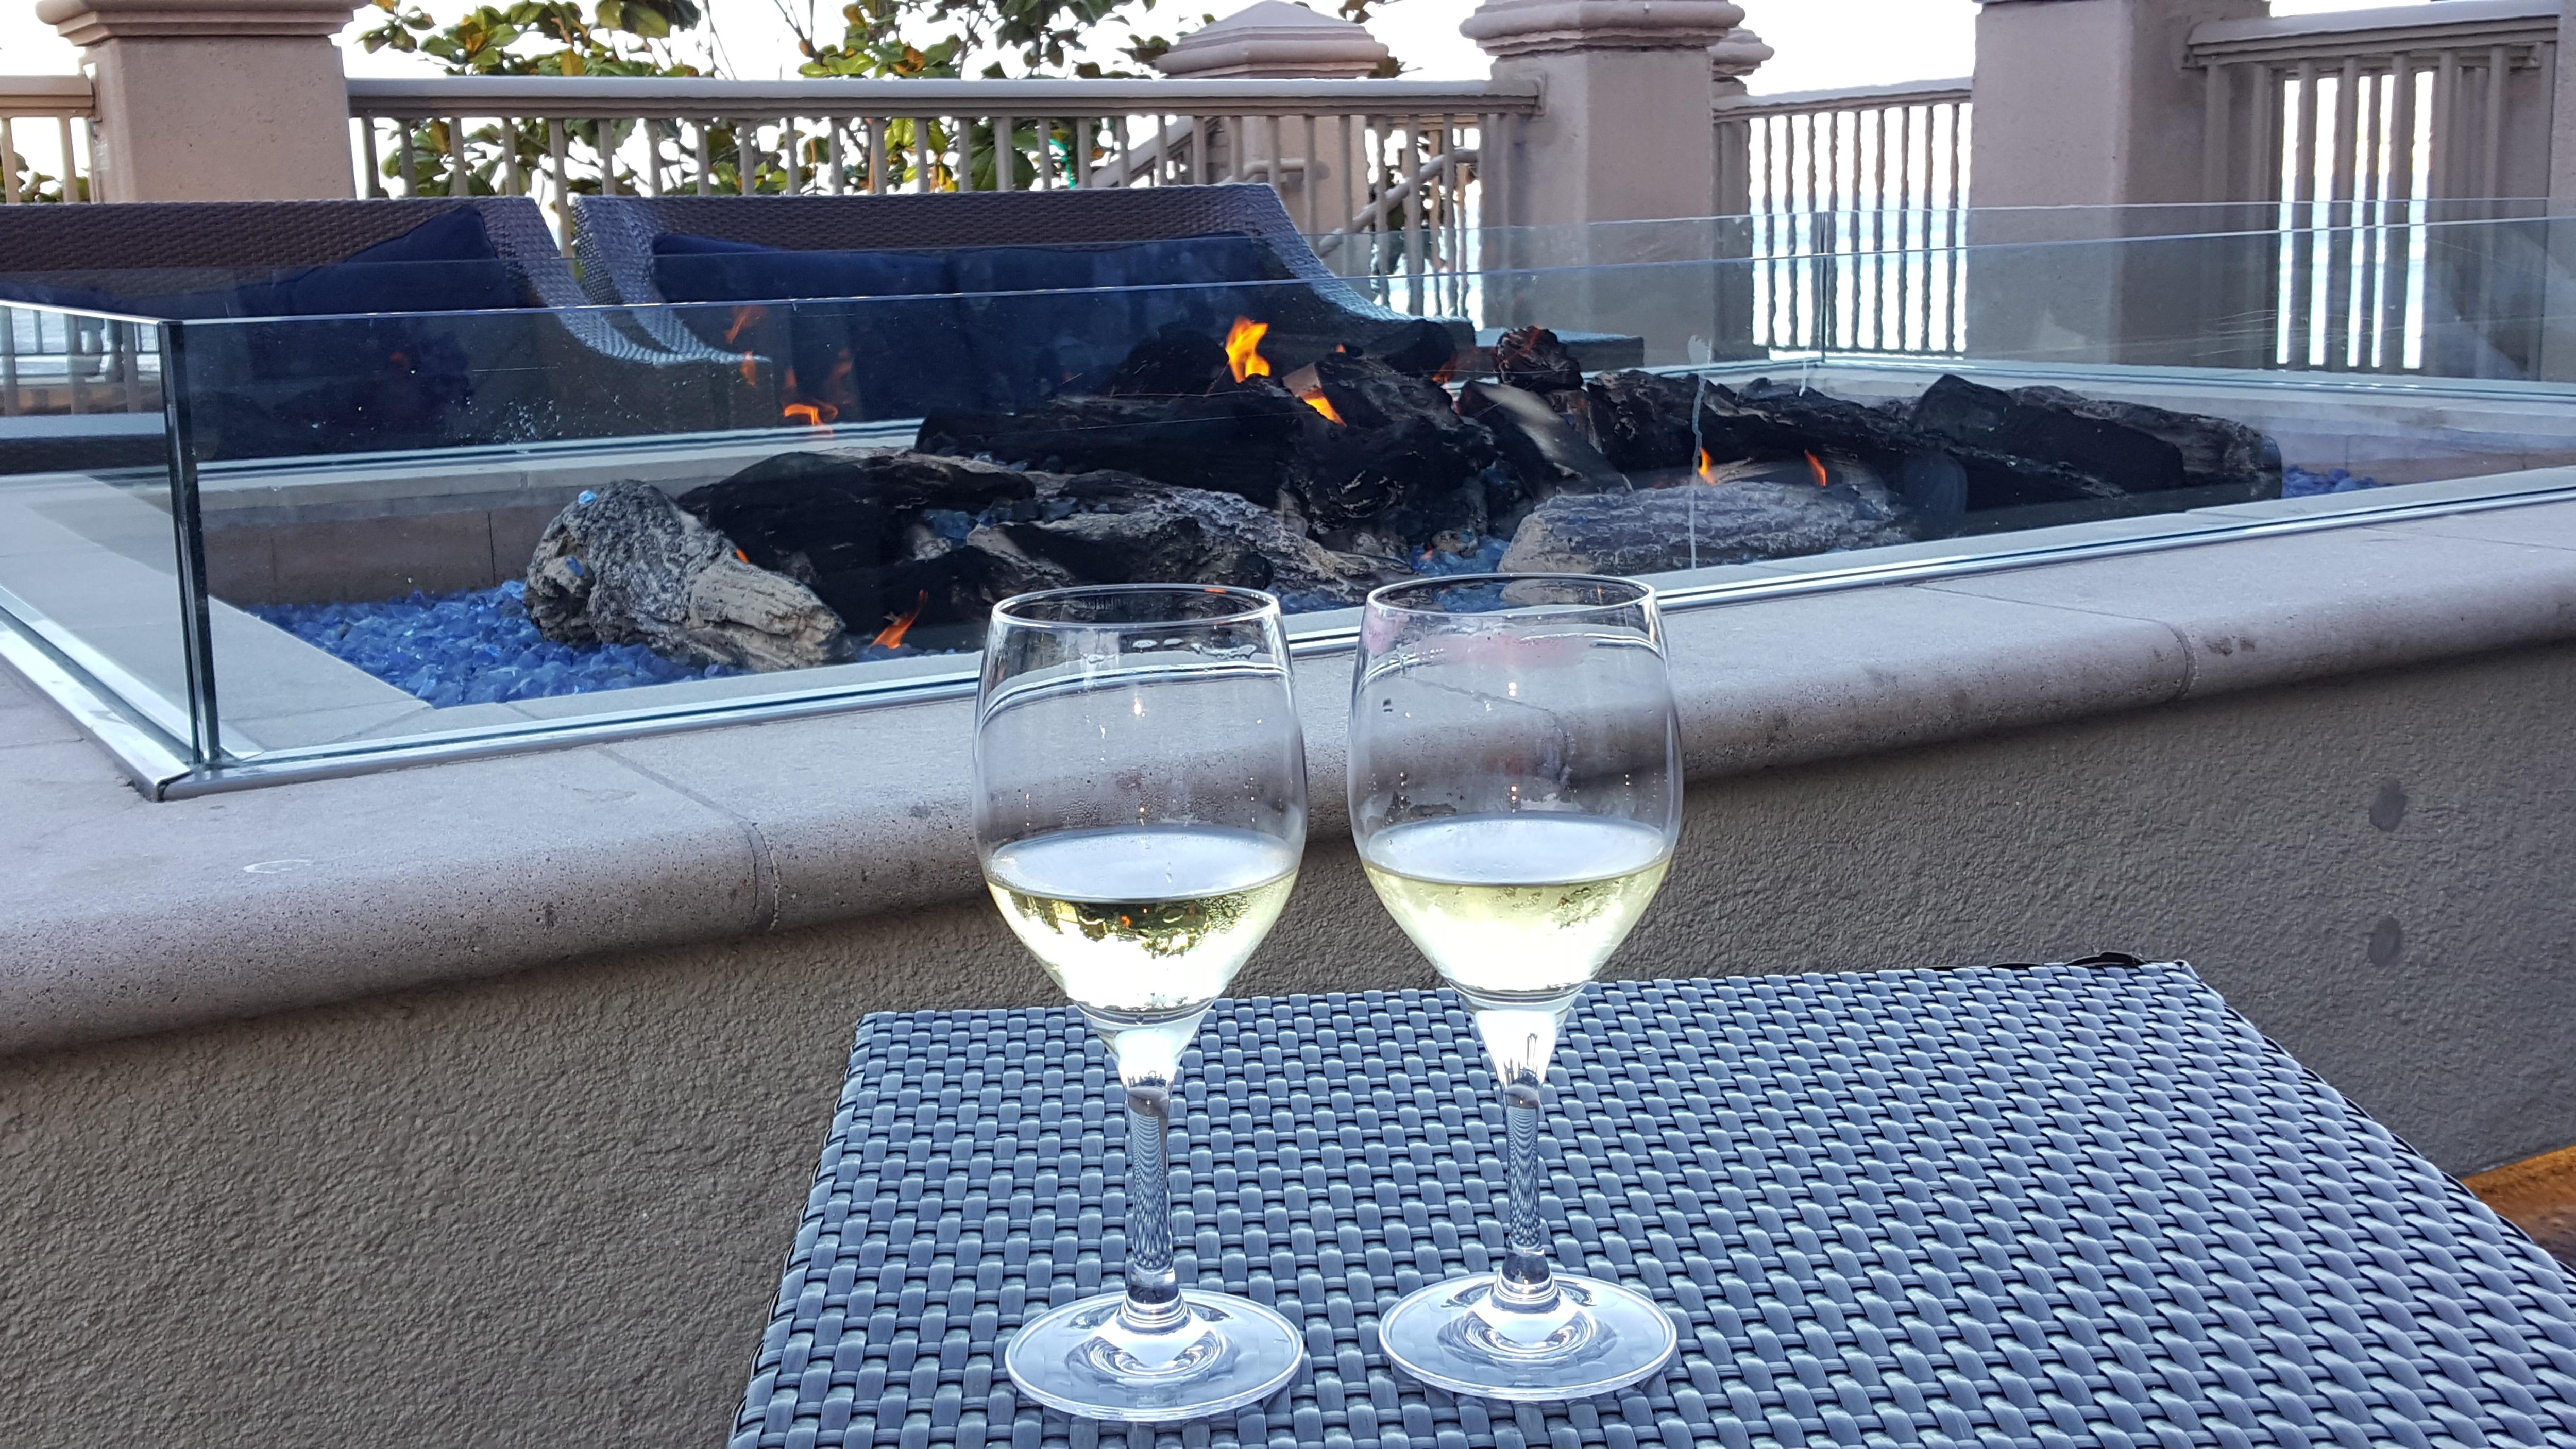 Wine and fire on patio